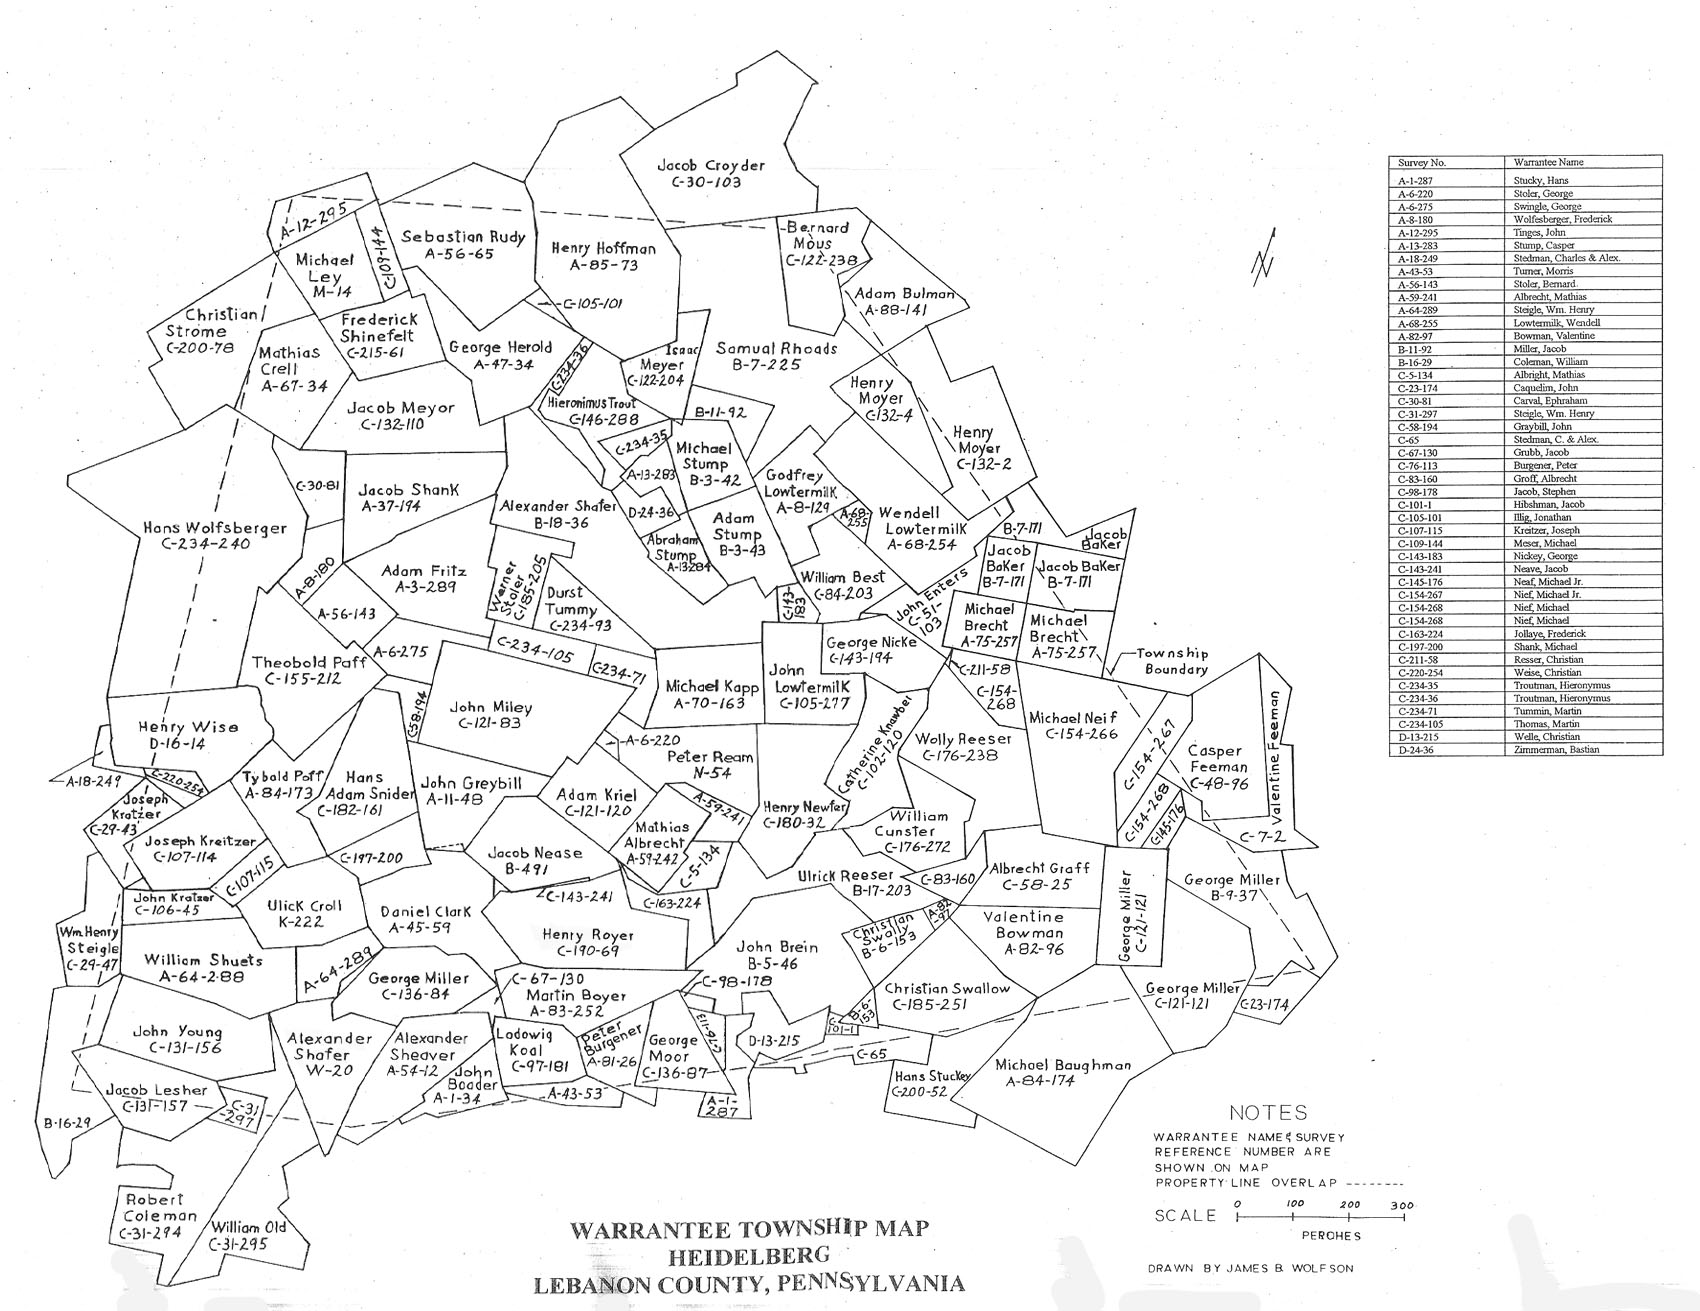 Heidelberg Twp., Lebanon Co. Map by James Wolfson